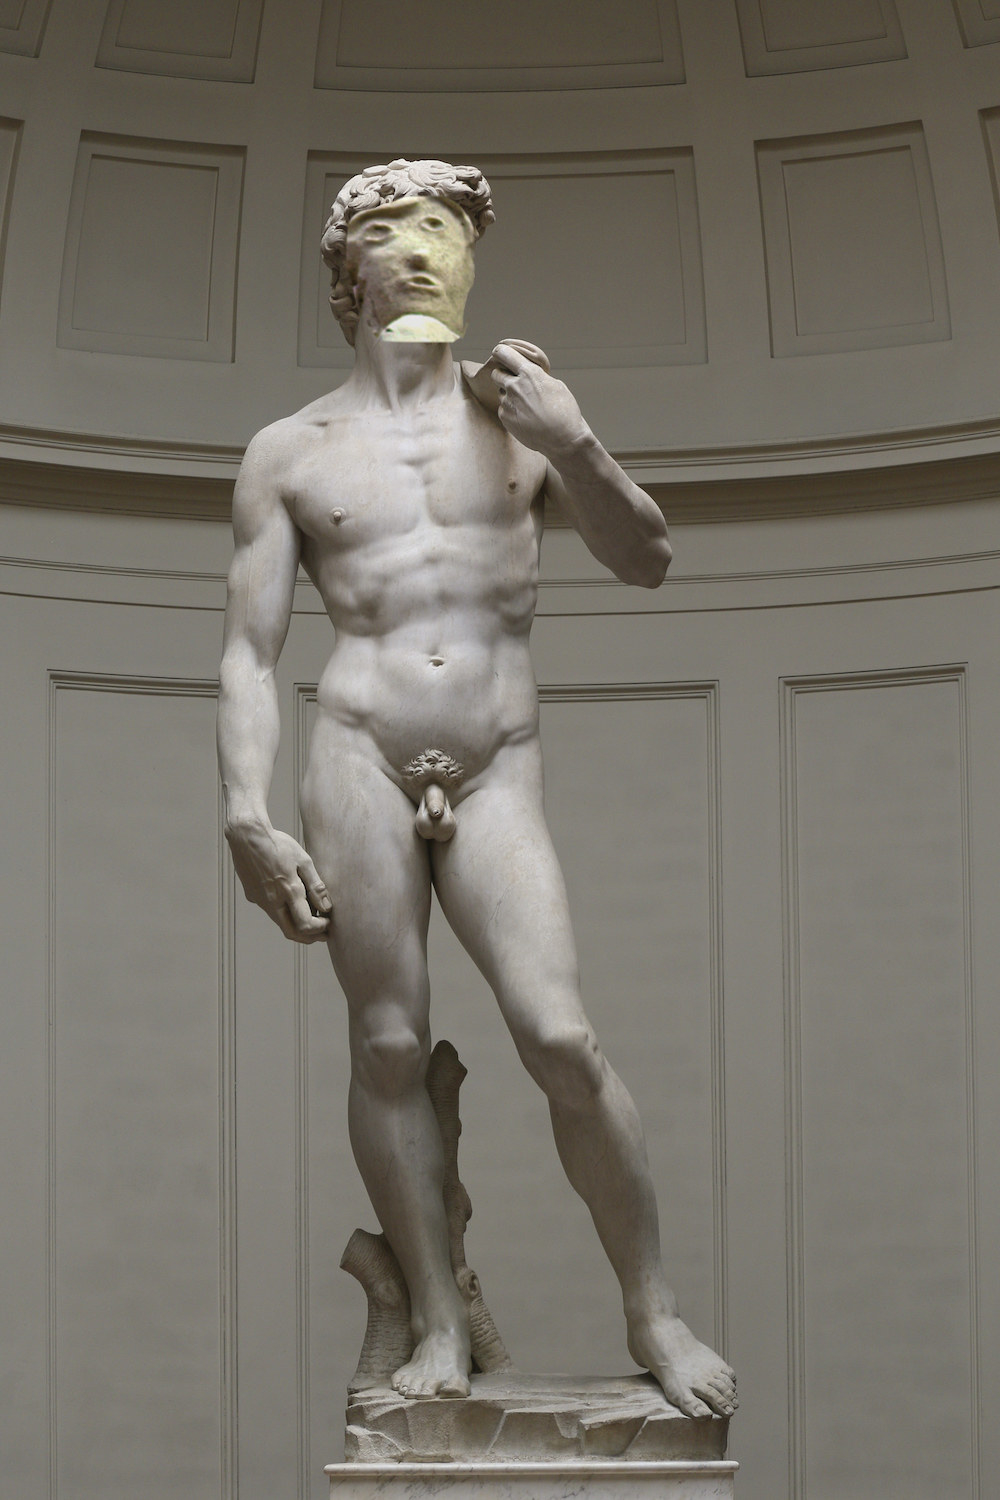 The sculpture's restored face superimposed on the face of Michelangelo's David sculpture